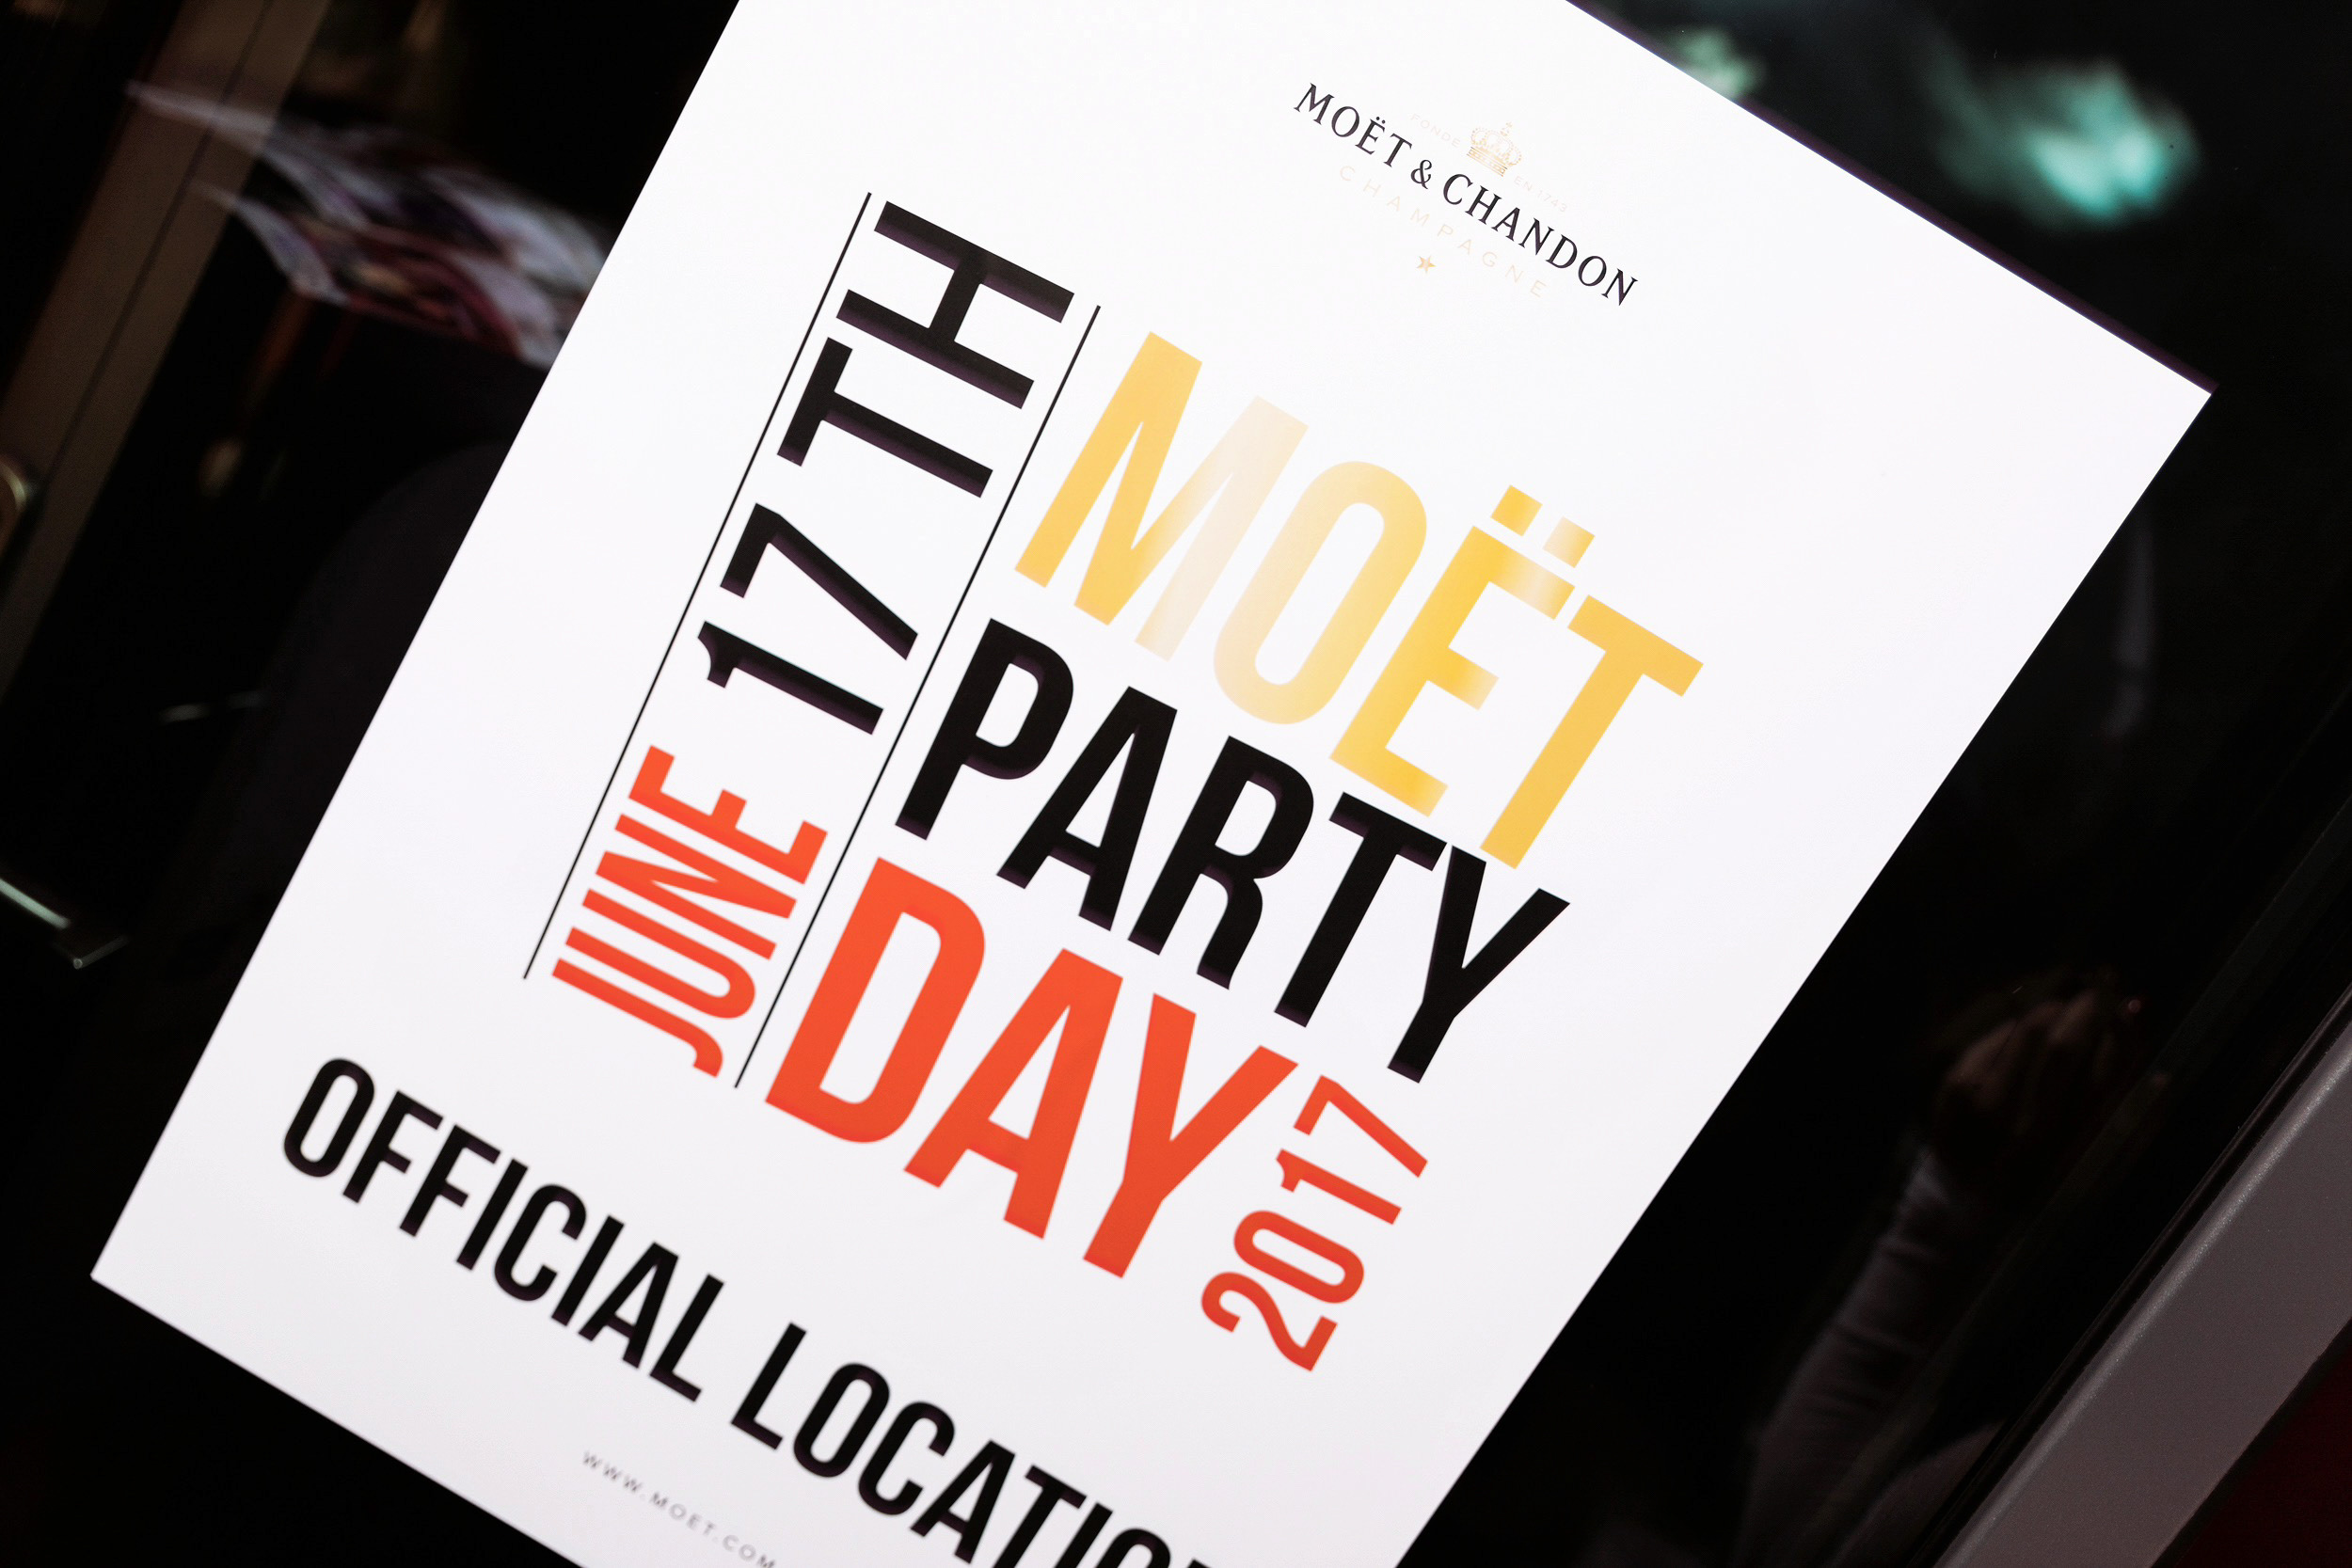 moet party day 2